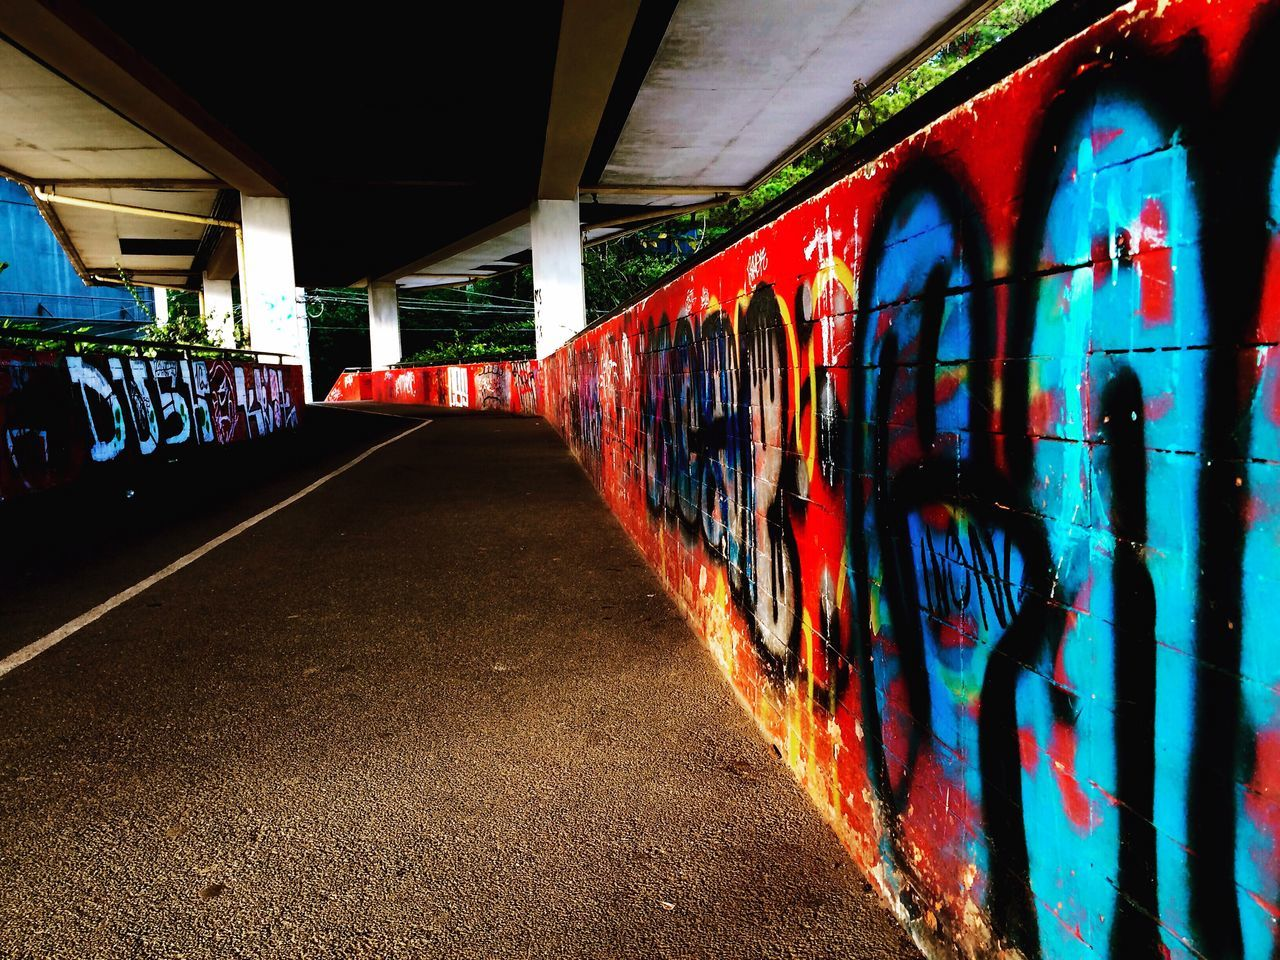 Streetside... Iosphoto Iosphotography Simpleshot Overpass View Graffiti Streetphotography